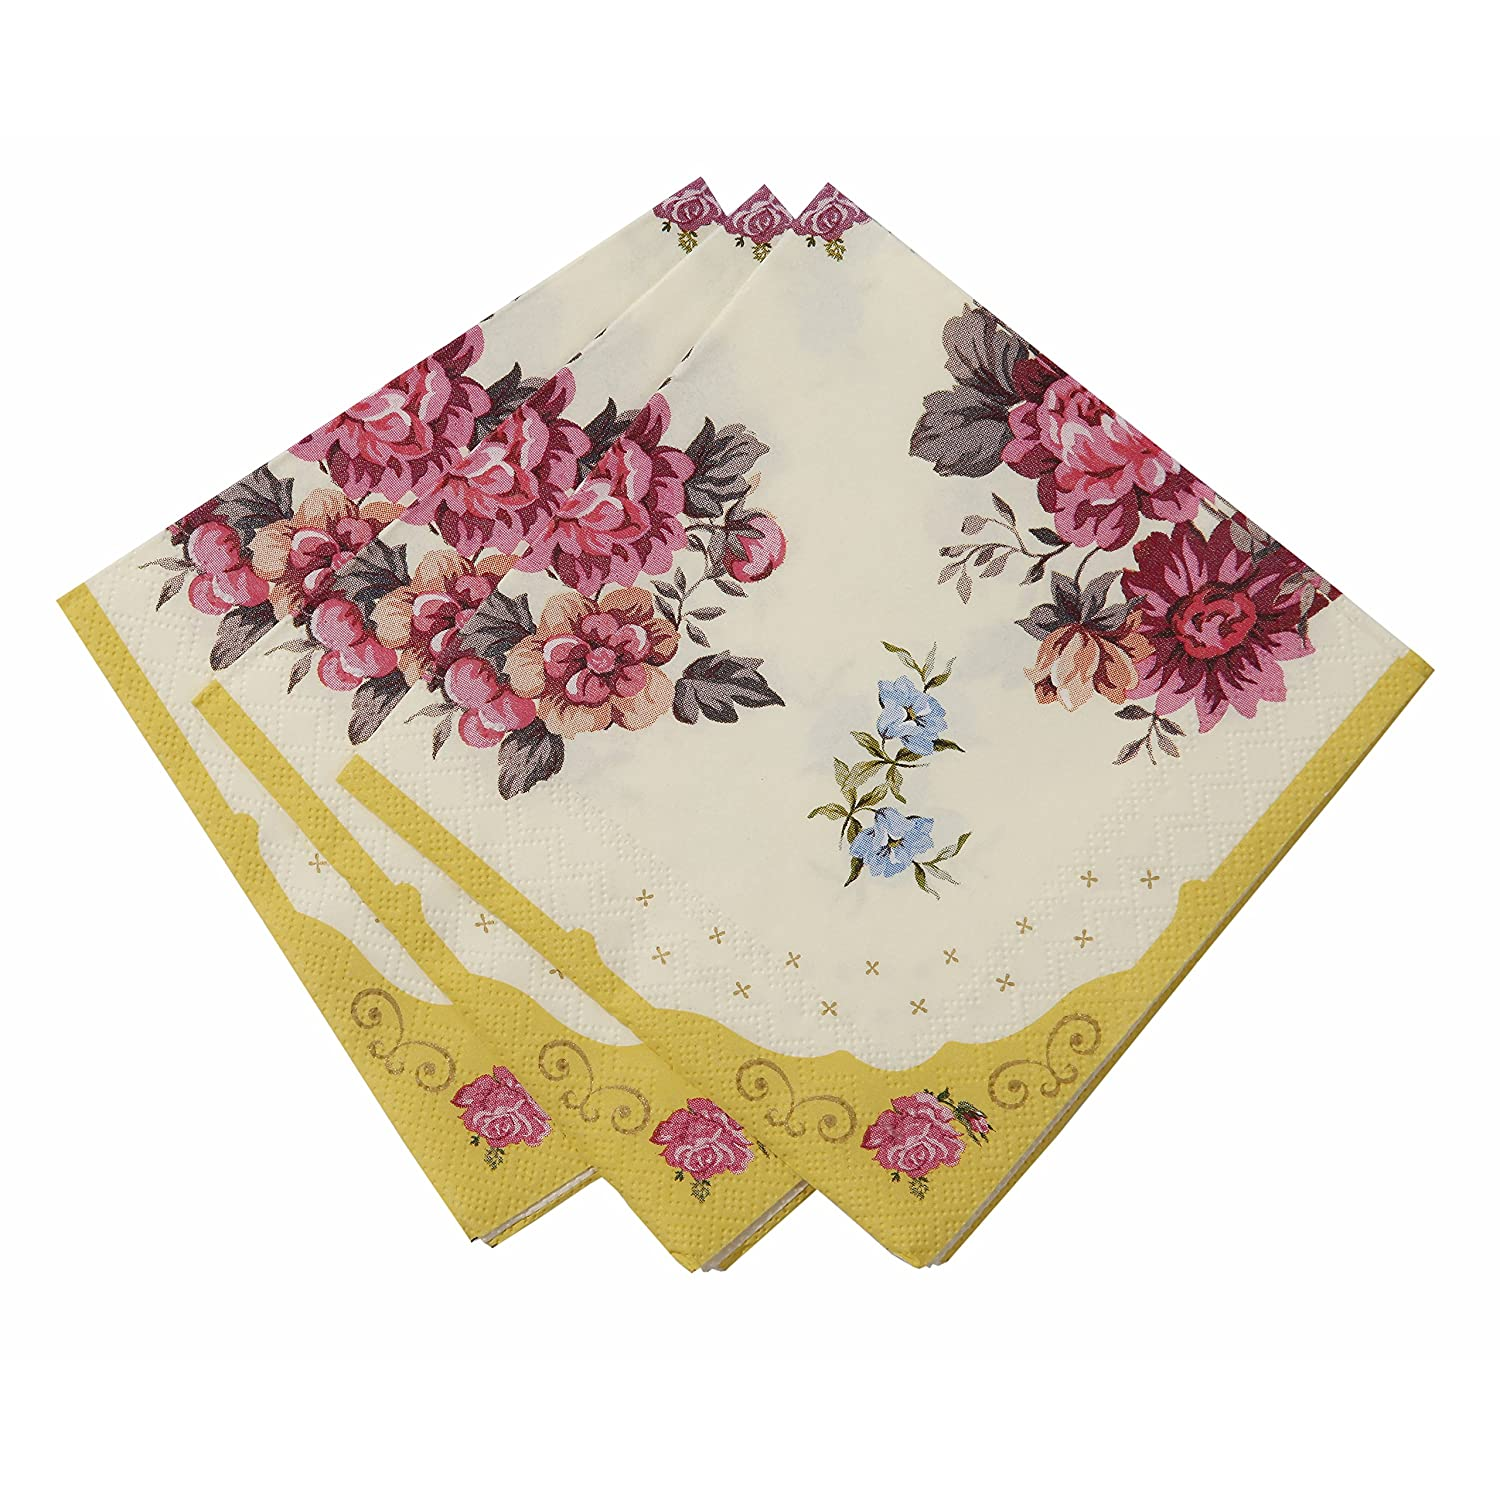 amazoncom talking tables truly scrumptious floral napkins for a tea party or birthday multicolor 30 pack home kitchen